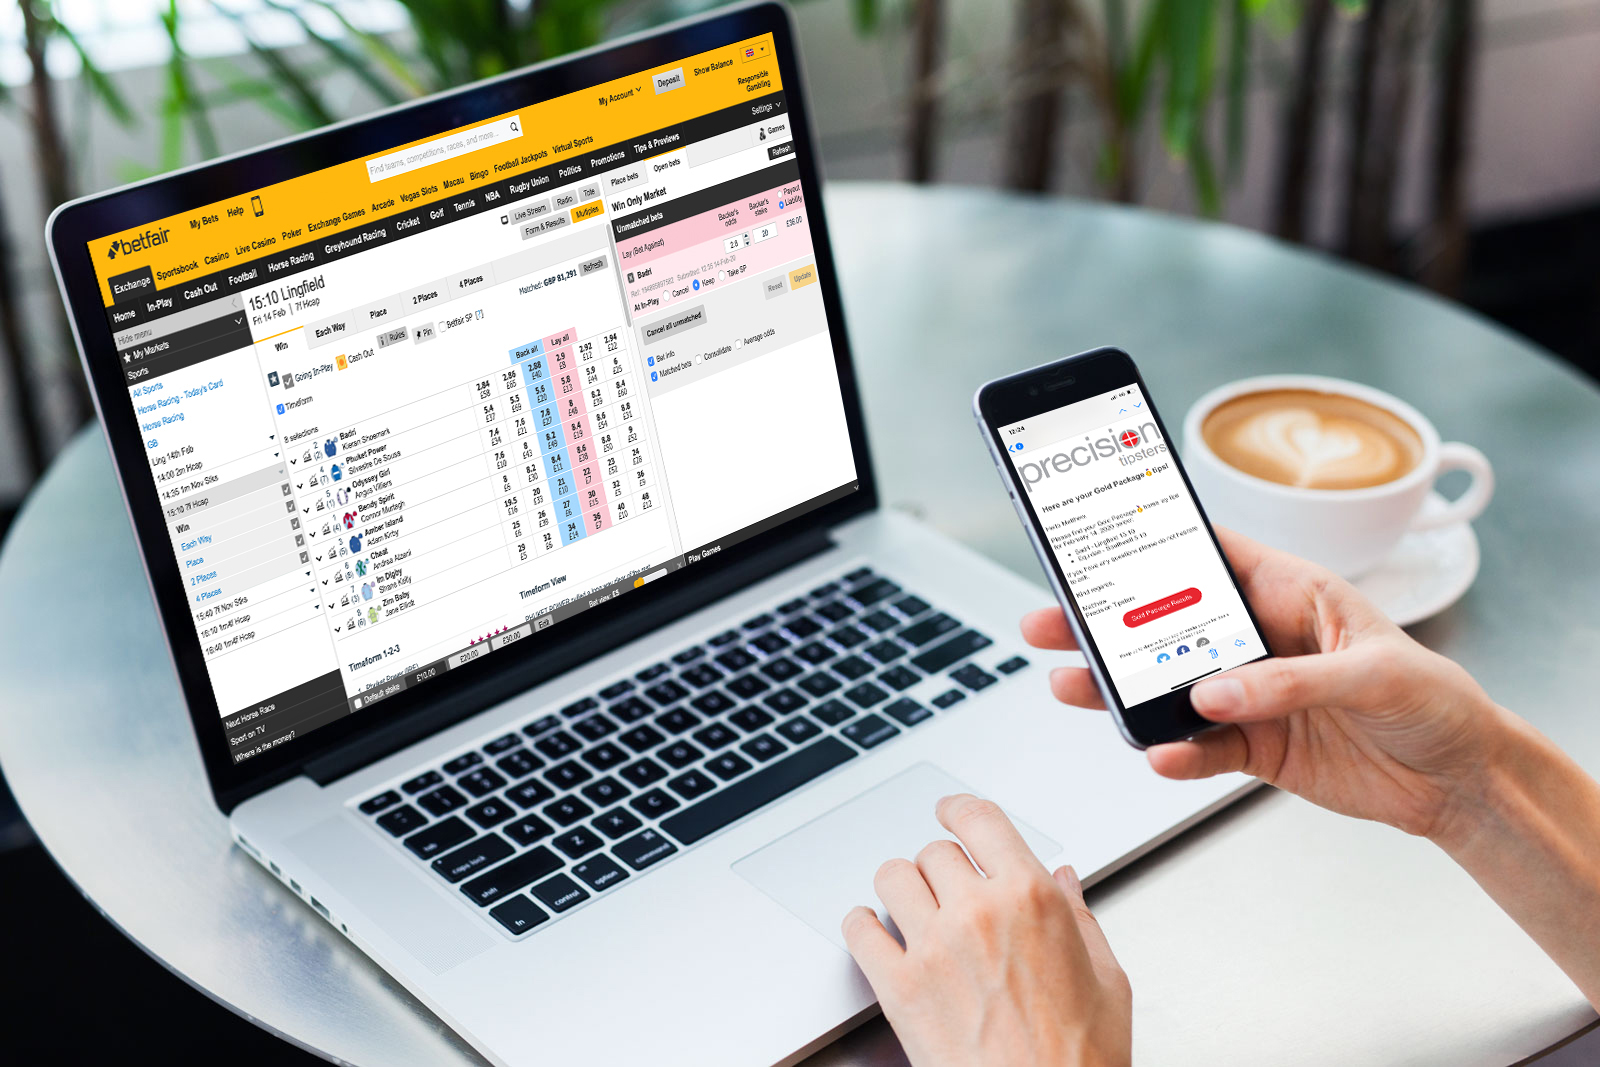 Laptop and iphone placing bet on betfair with emailed tips